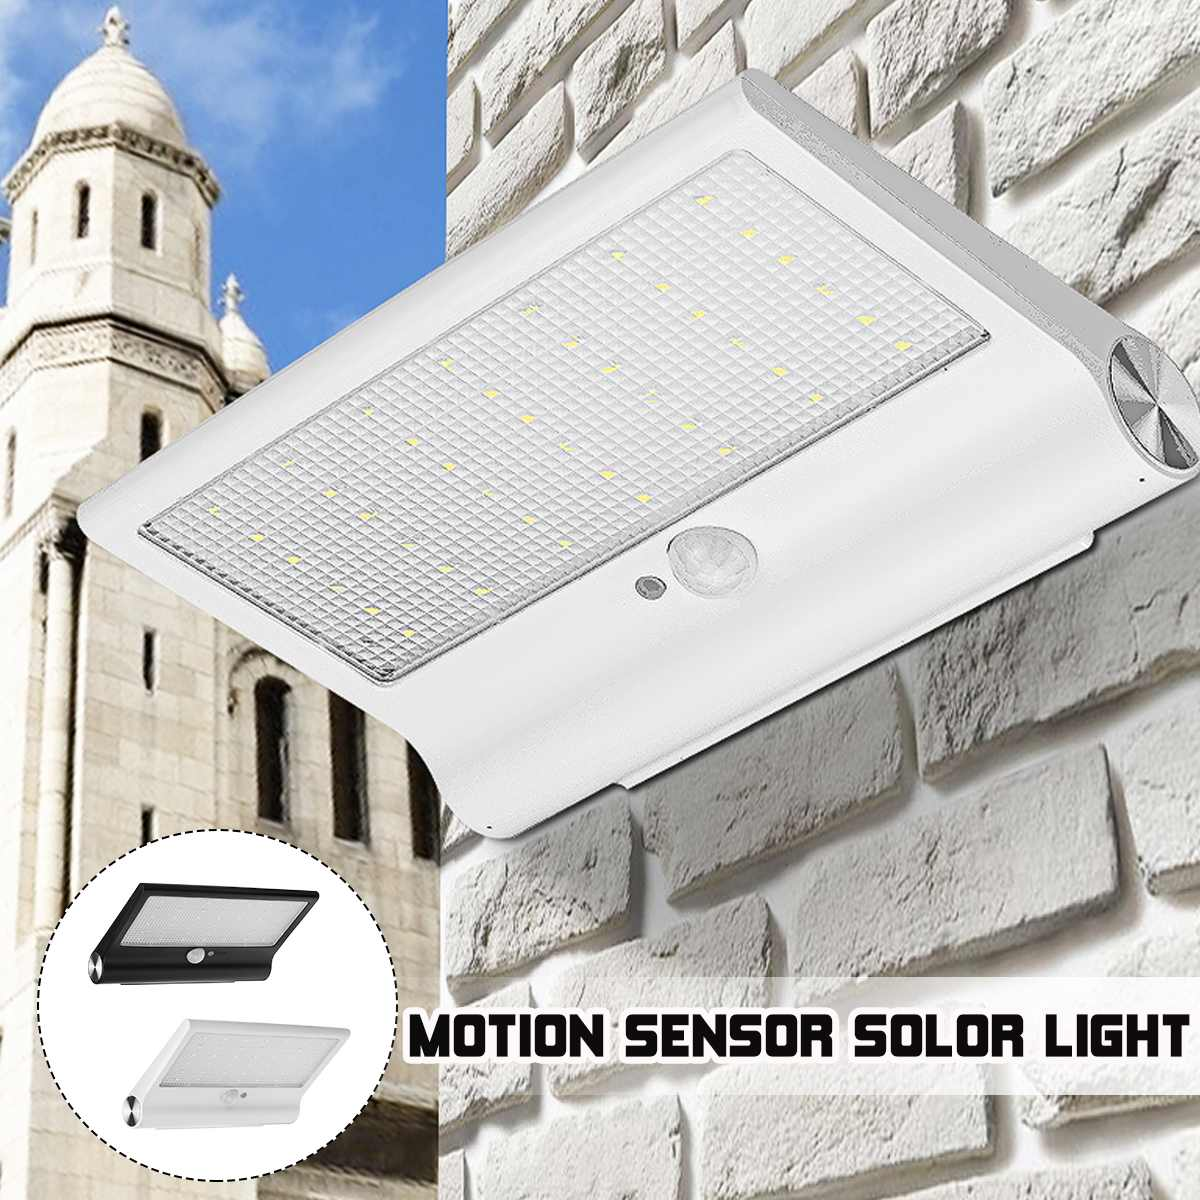 42 LED Black White Waterproof Solar Powered Motion Sensor Wall Outdoor Light Garden Security Lamp 3 Different Lighting Modes